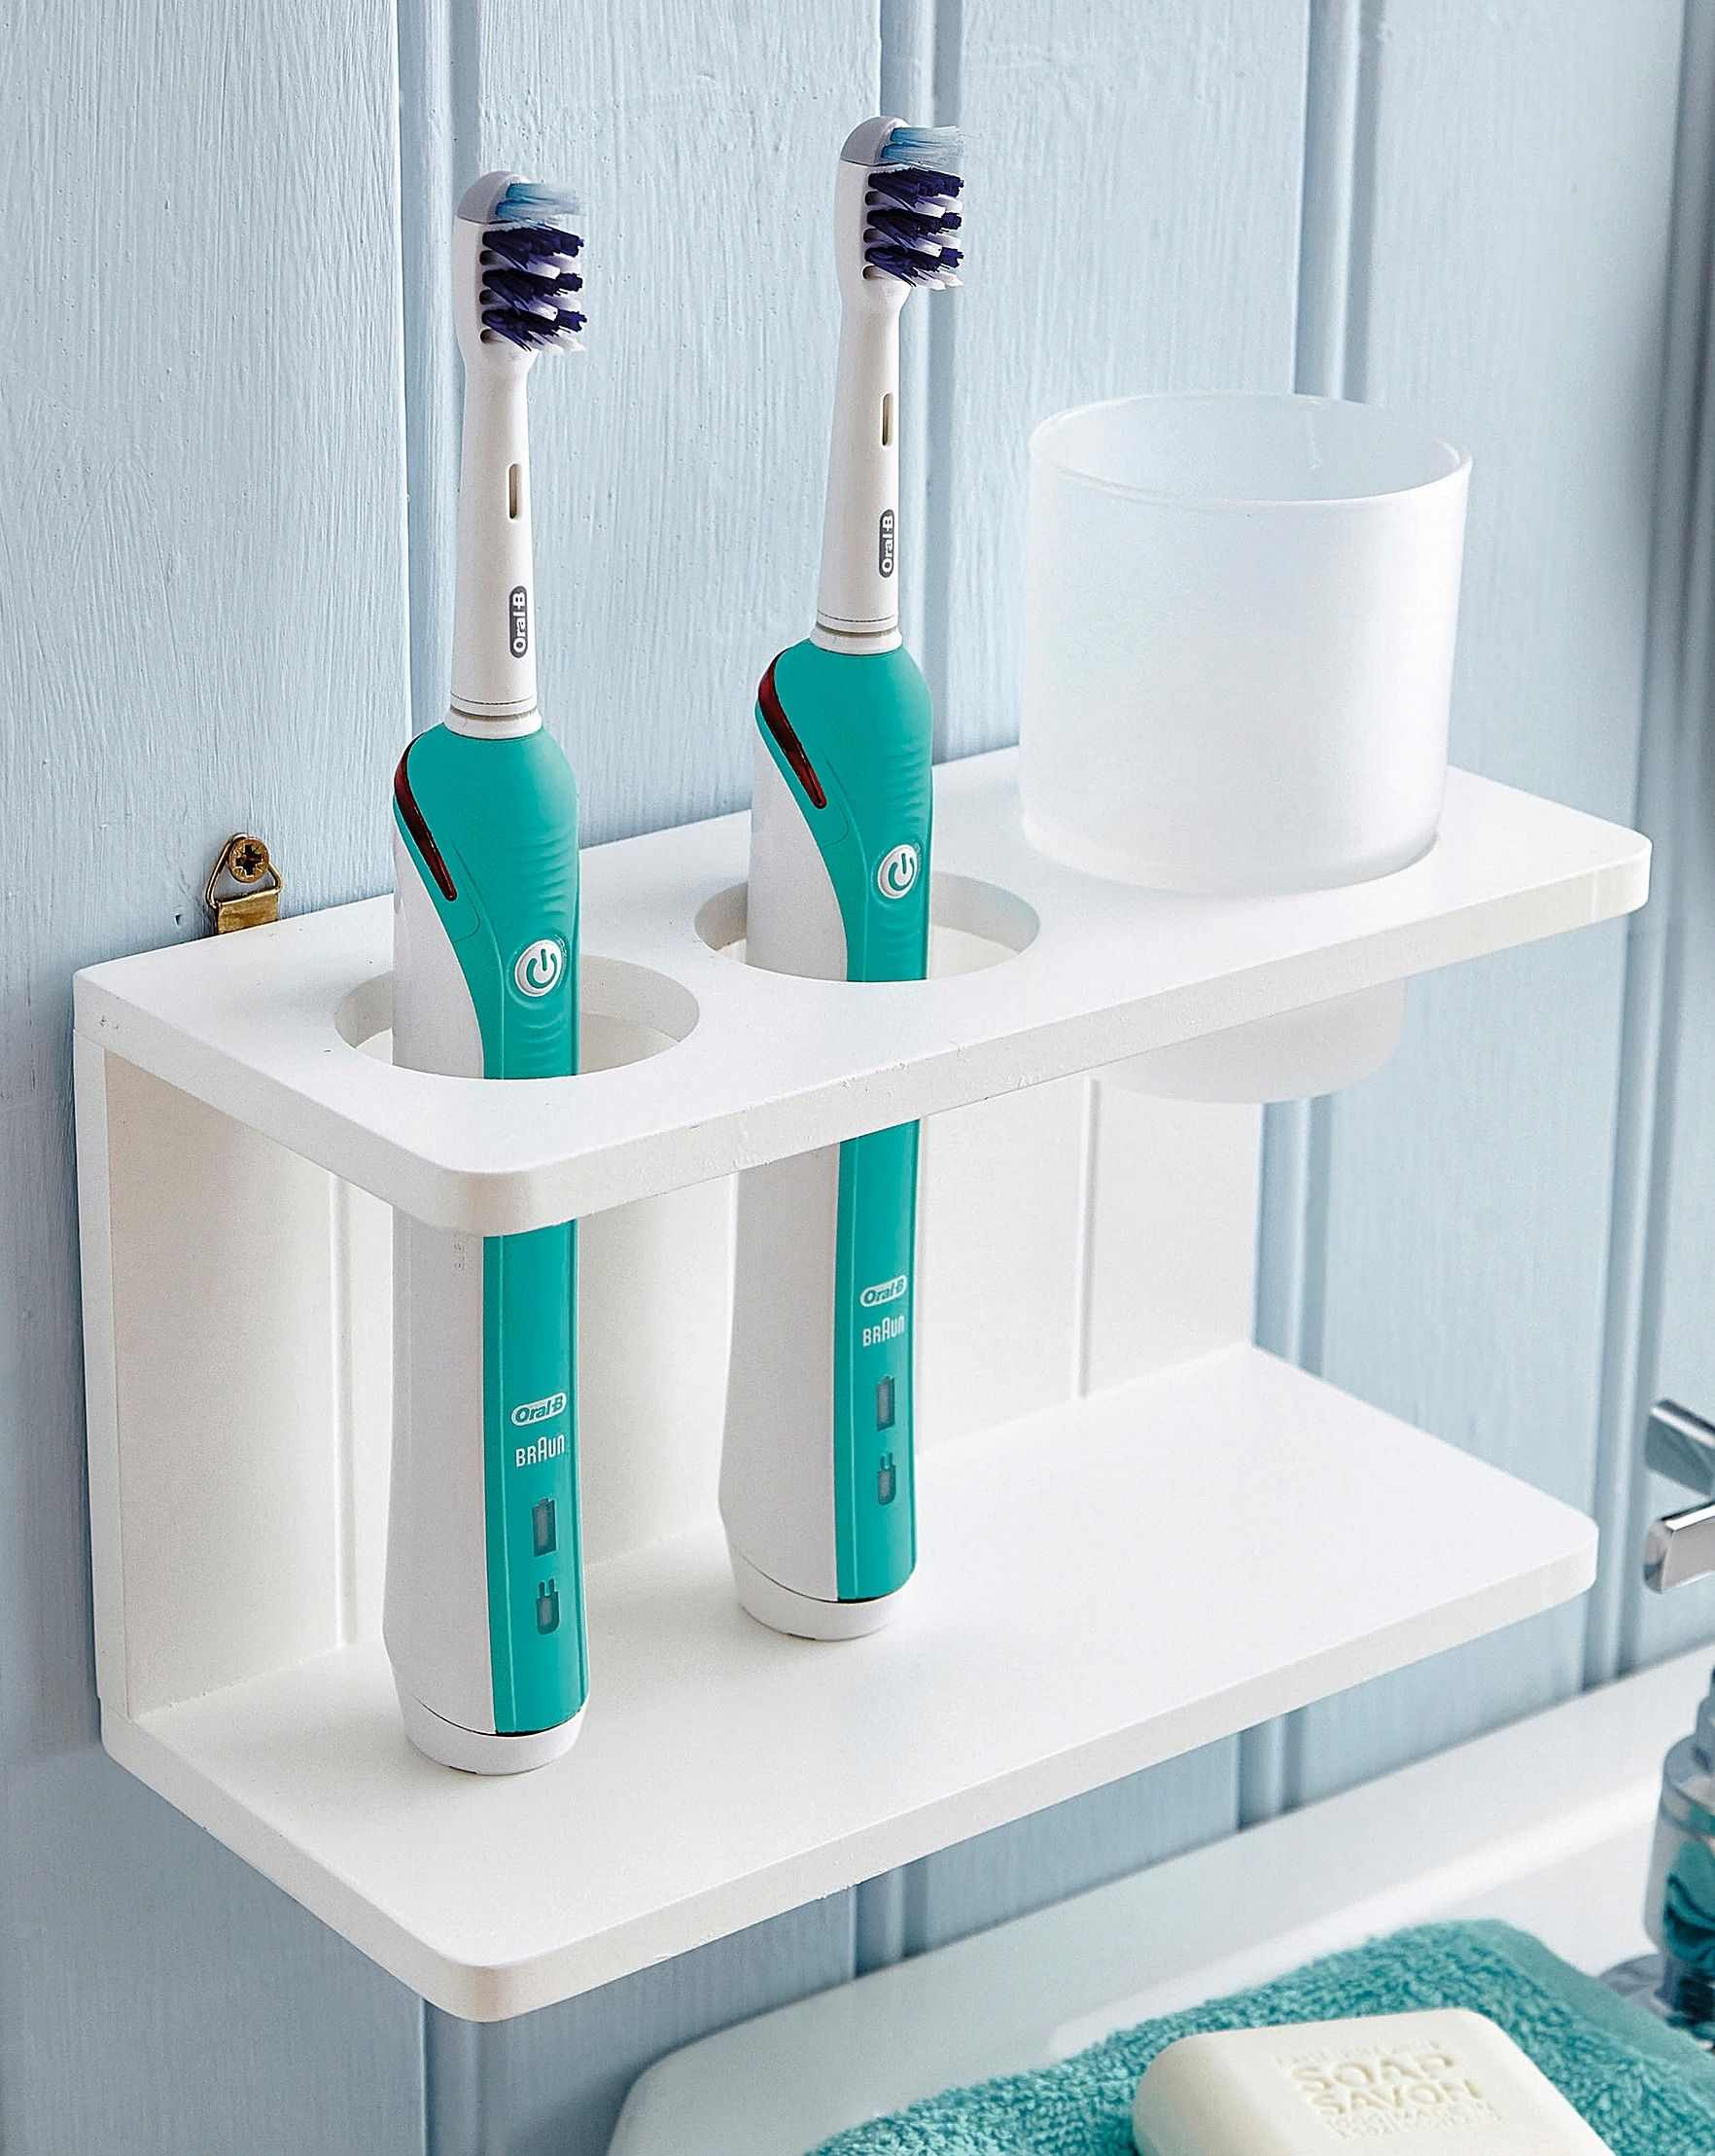 Oral B Zahnbürstenhalter Wall Mounted Electric Toothbrush Holder The Wall Mount Is The